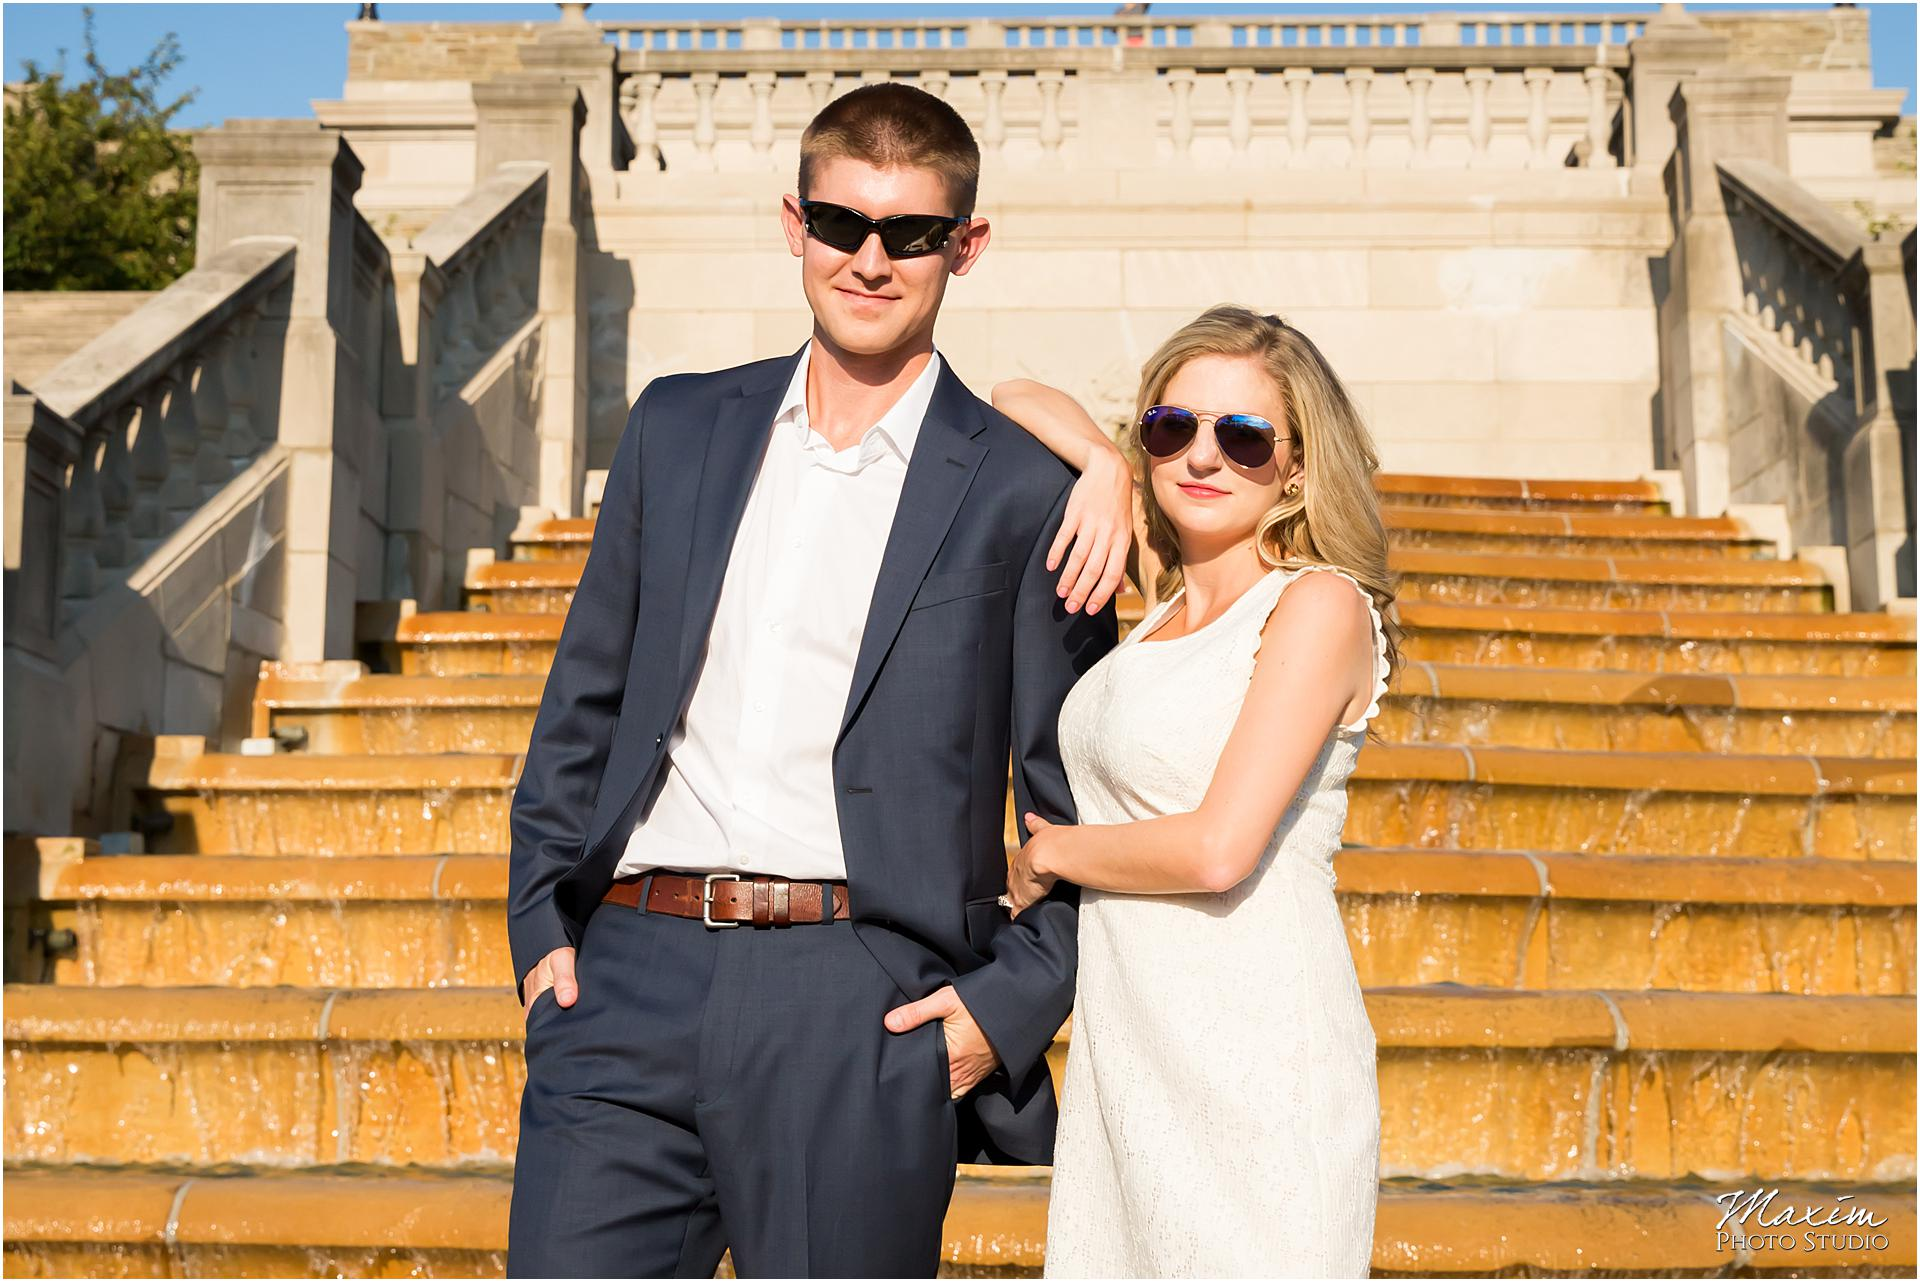 Ault Park Pavillion steps, engagement sunglasses